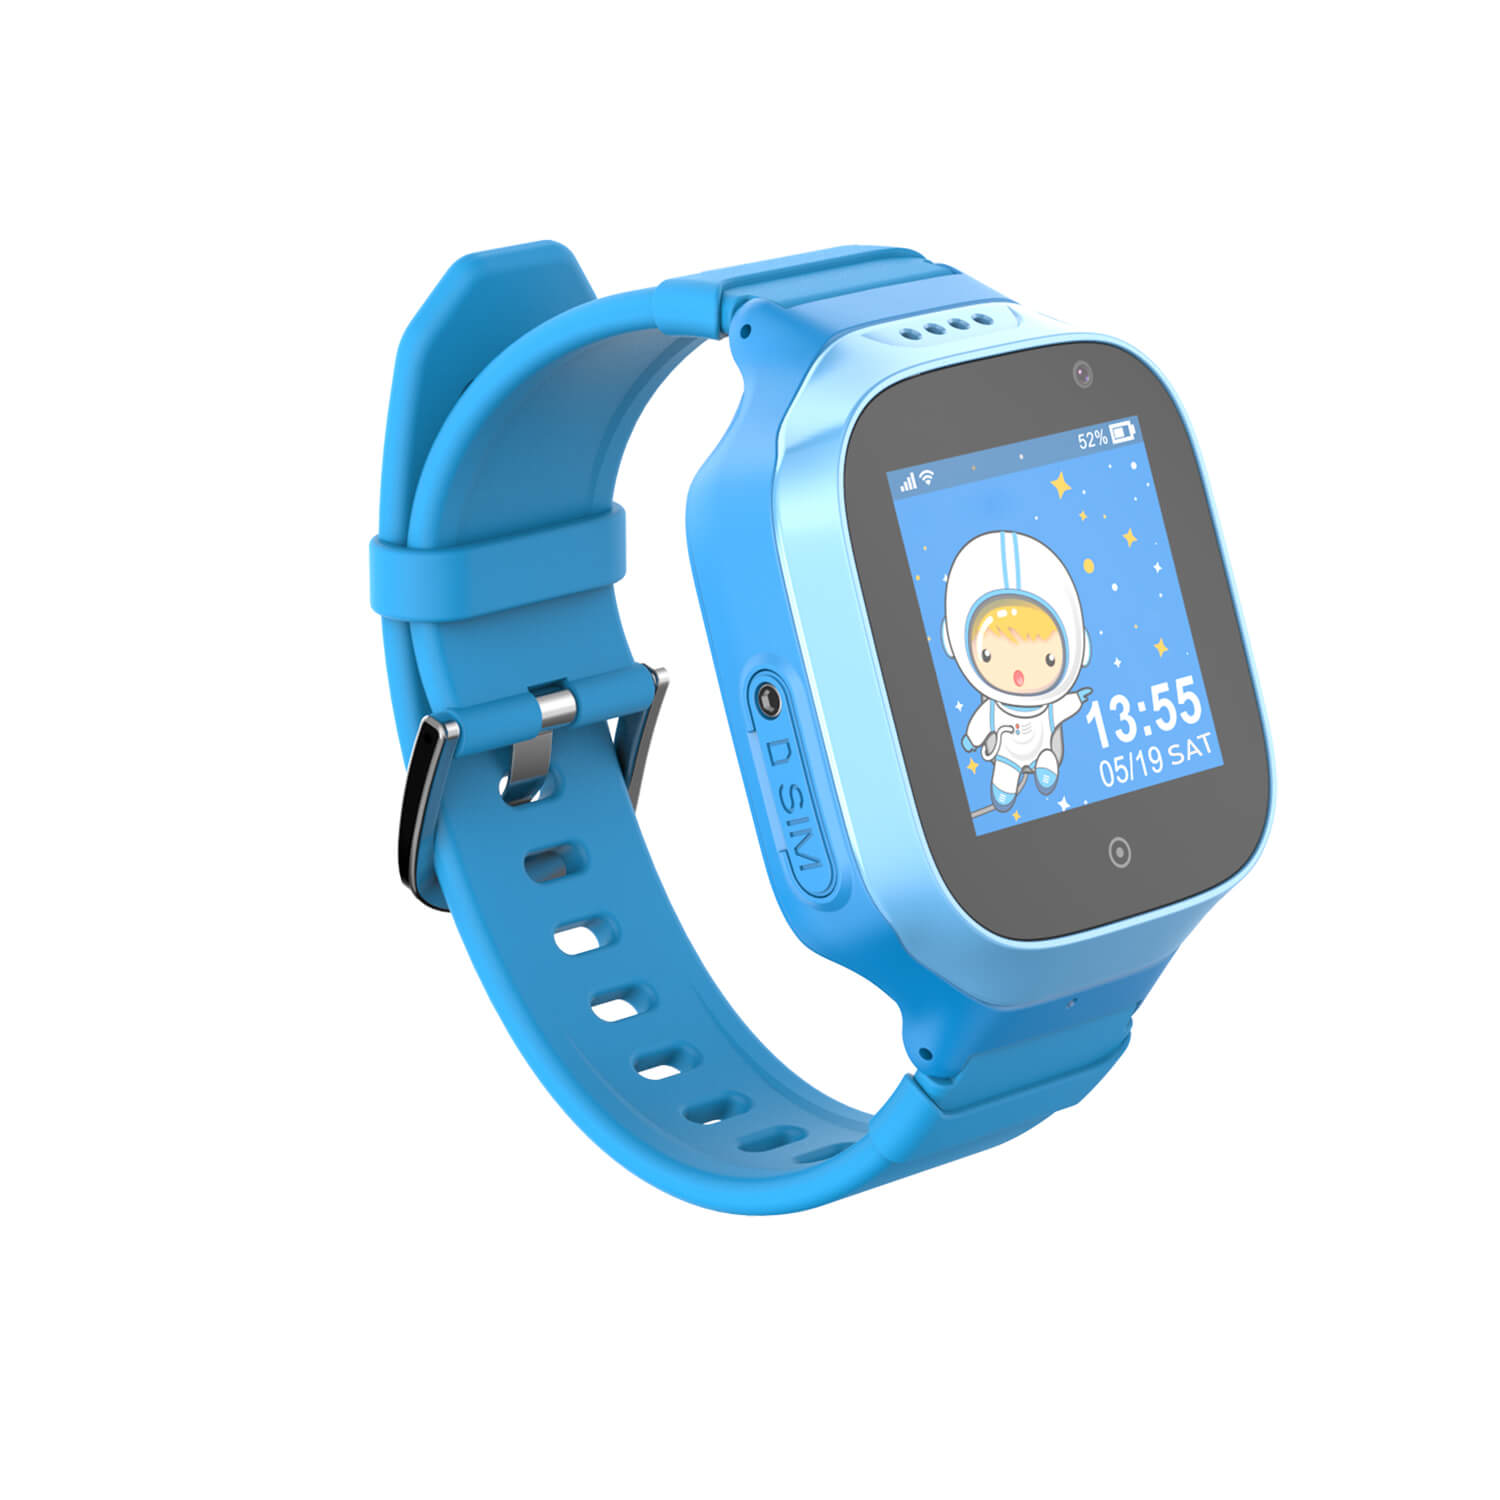 3G Smart Kids GPS Tracker Watch with Waterproof Y20s